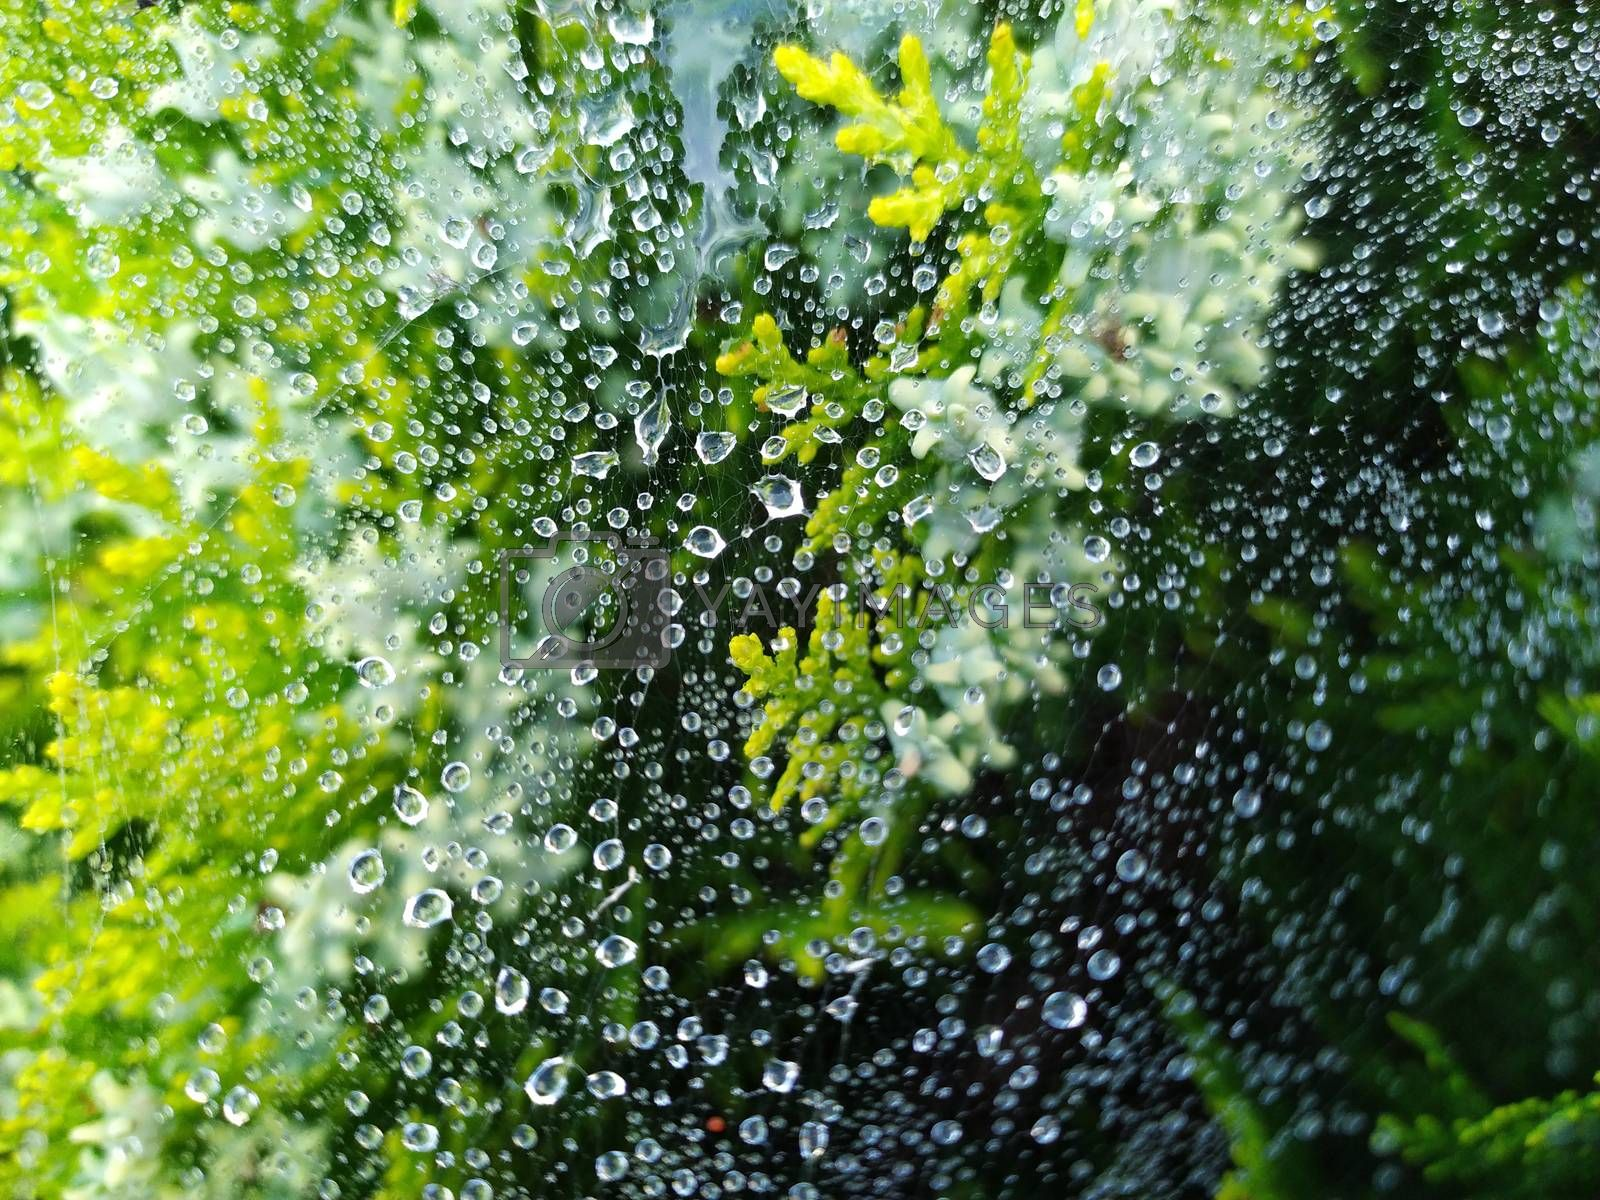 droplets of rain on the spider web